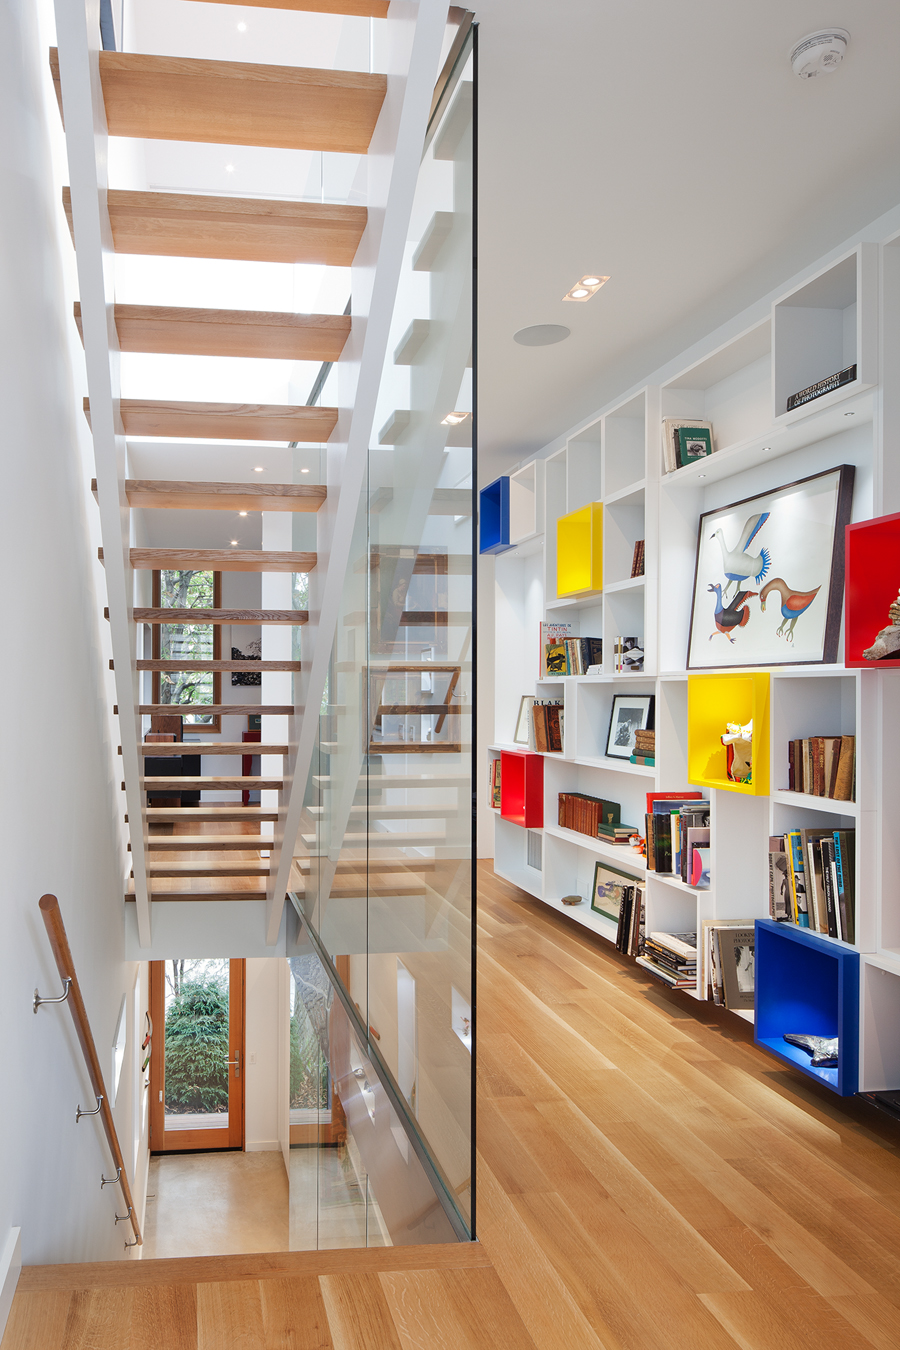 A custom, modular bookcase system enlivens the second floor of House 2.